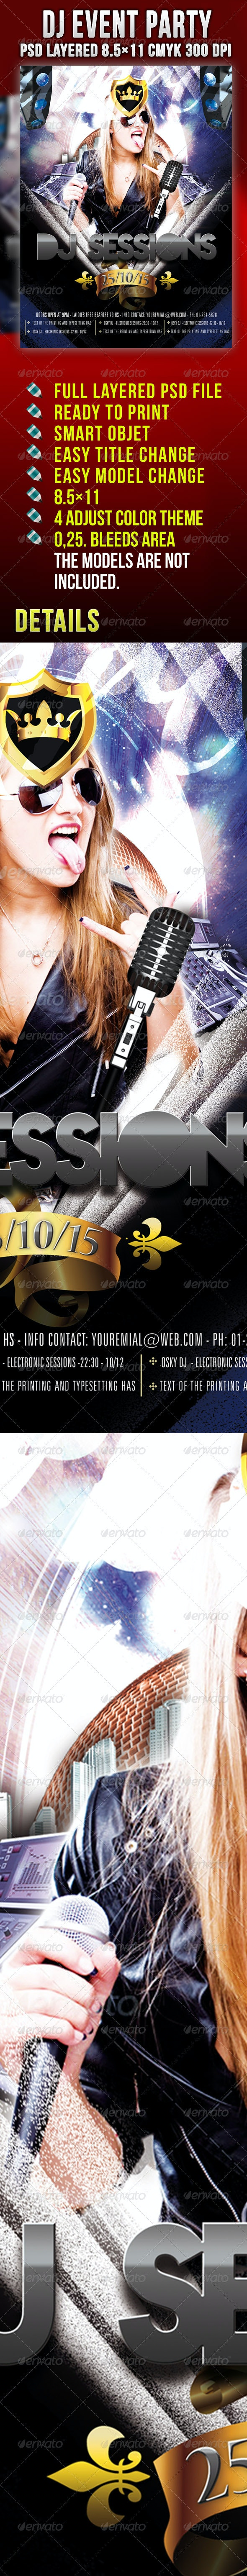 DJ Event Flyer - Clubs & Parties Events